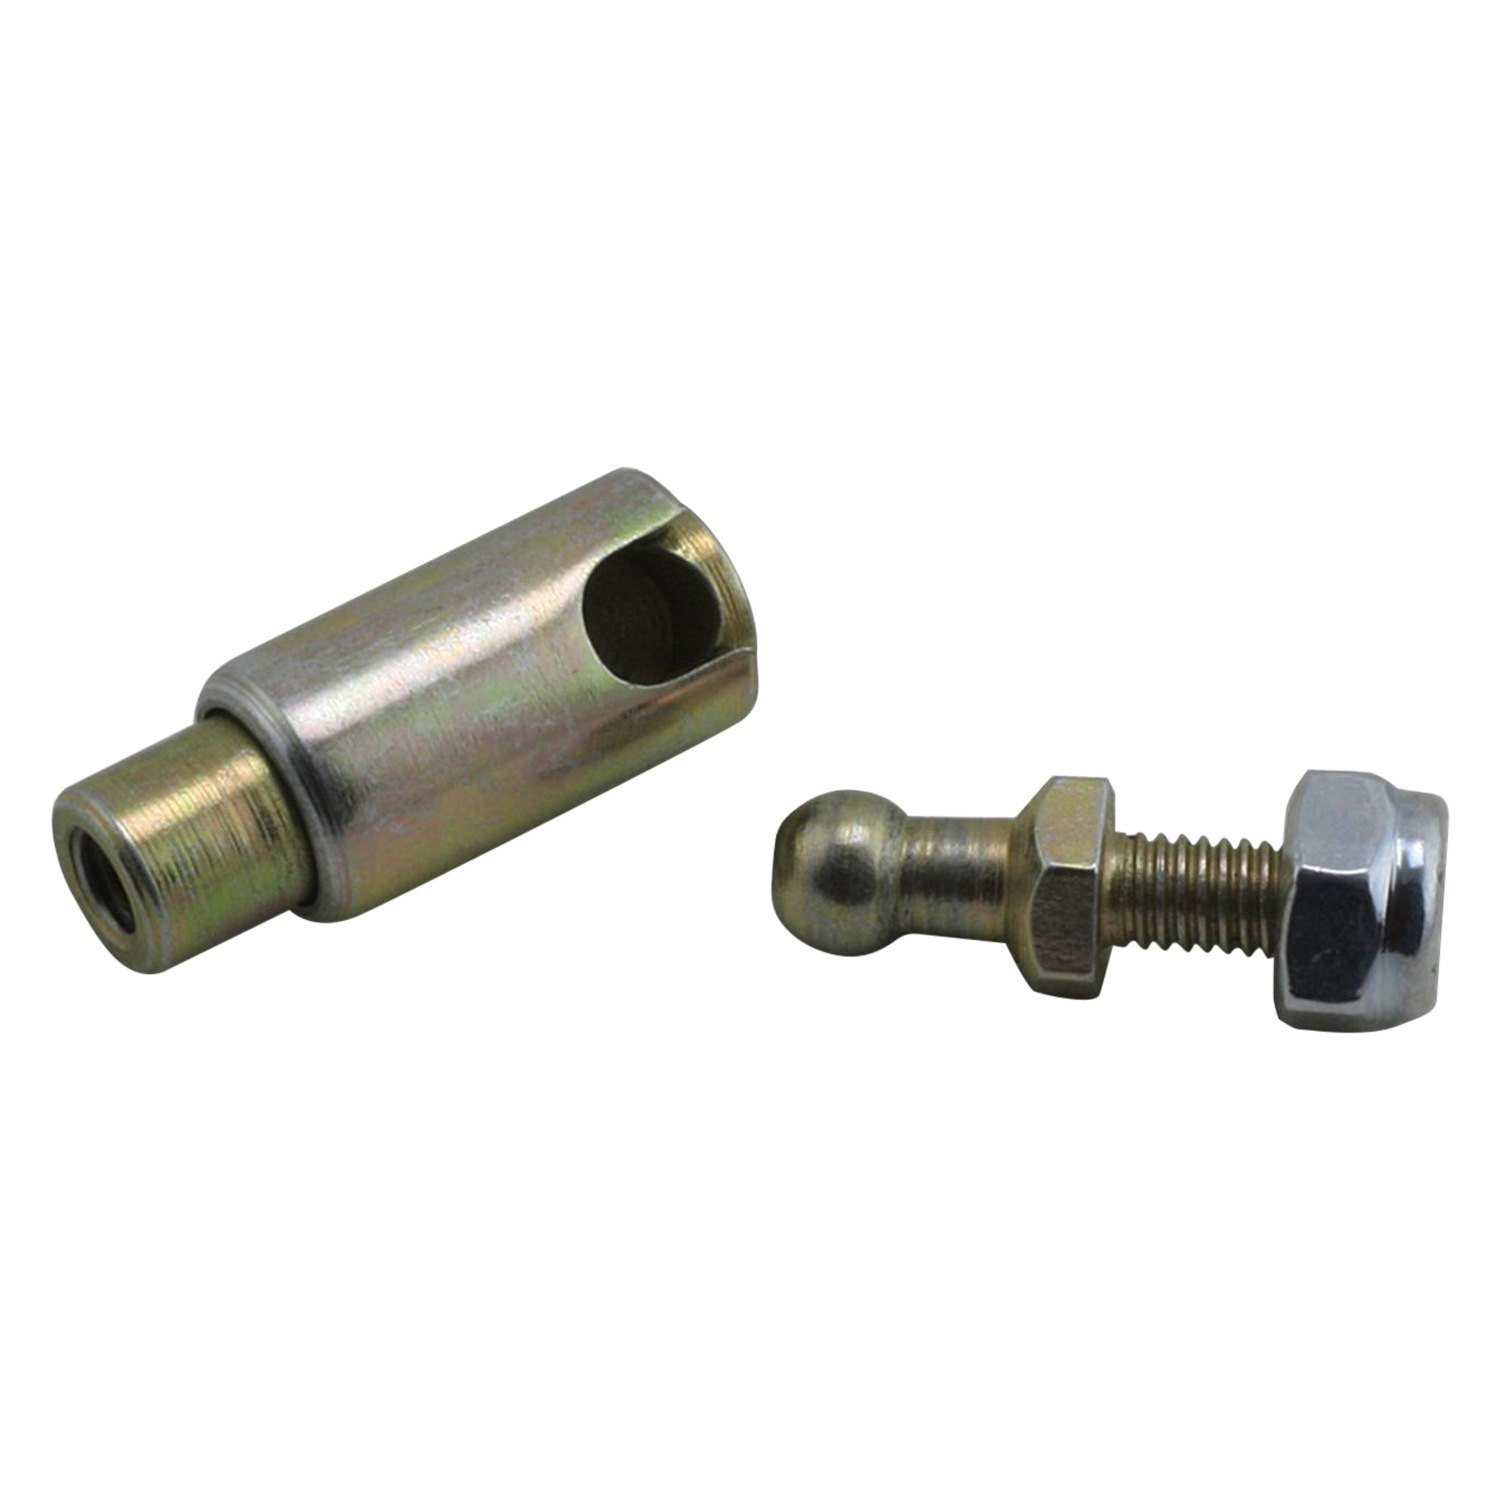 Pro werks quick release cable ball joint